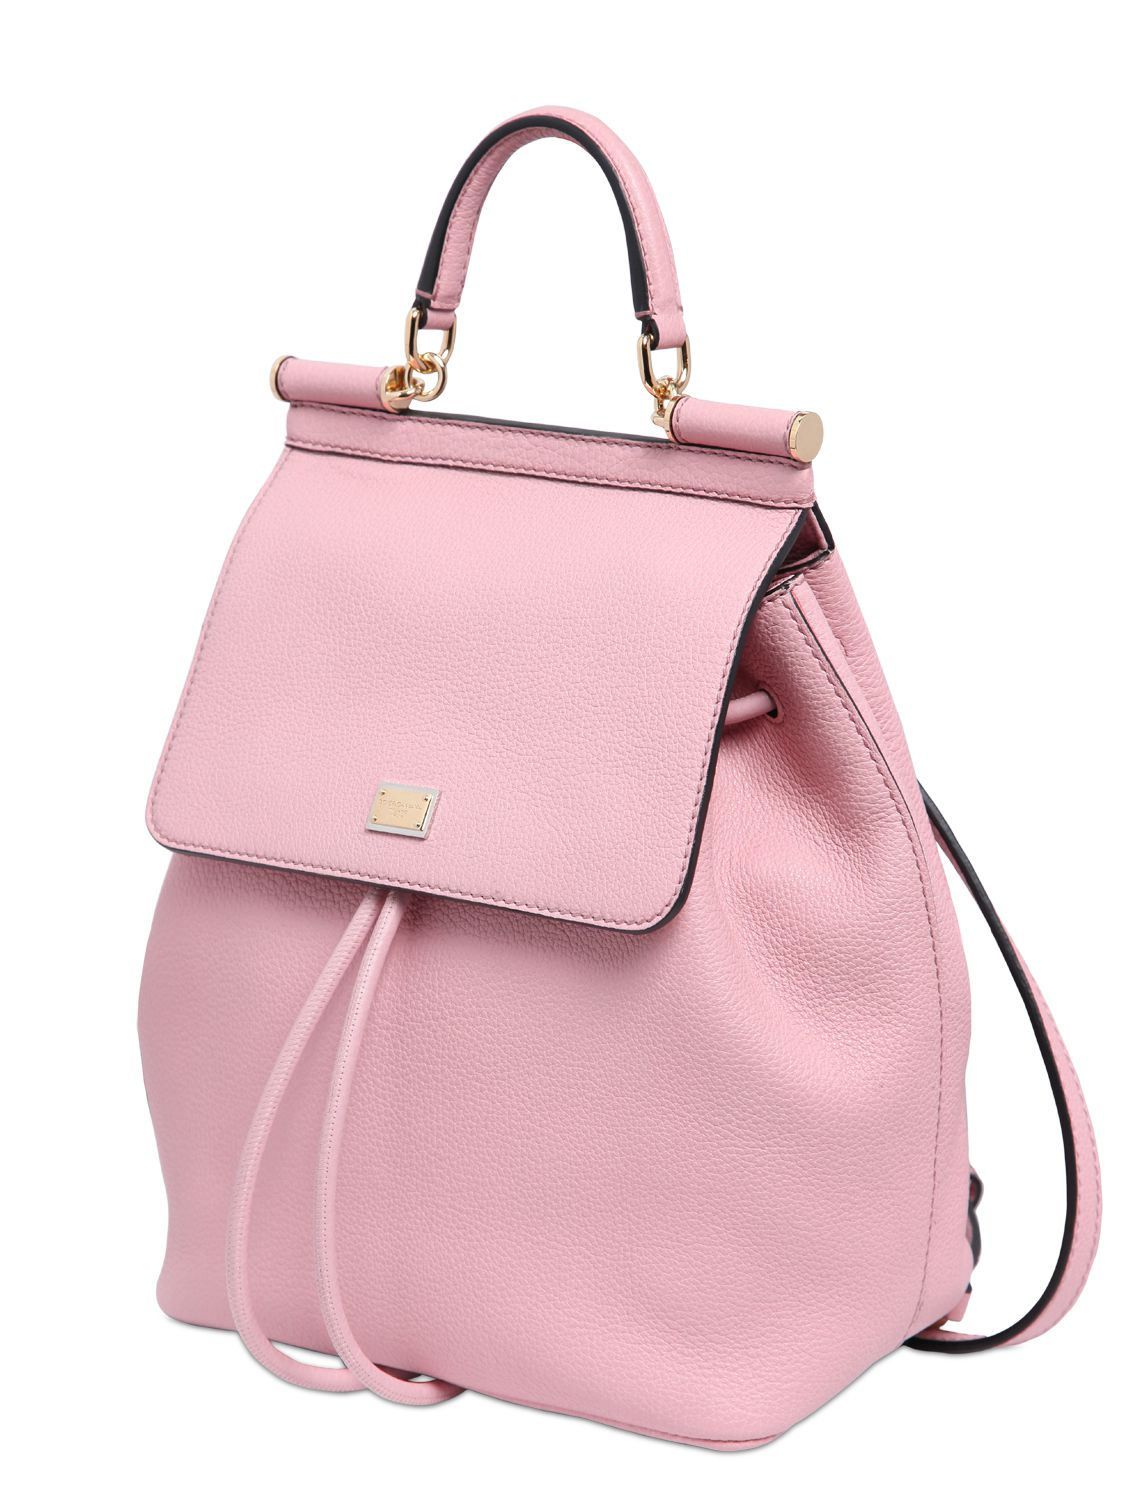 Dolce & gabbana Sicily Grained Leather Backpack in Pink | Lyst